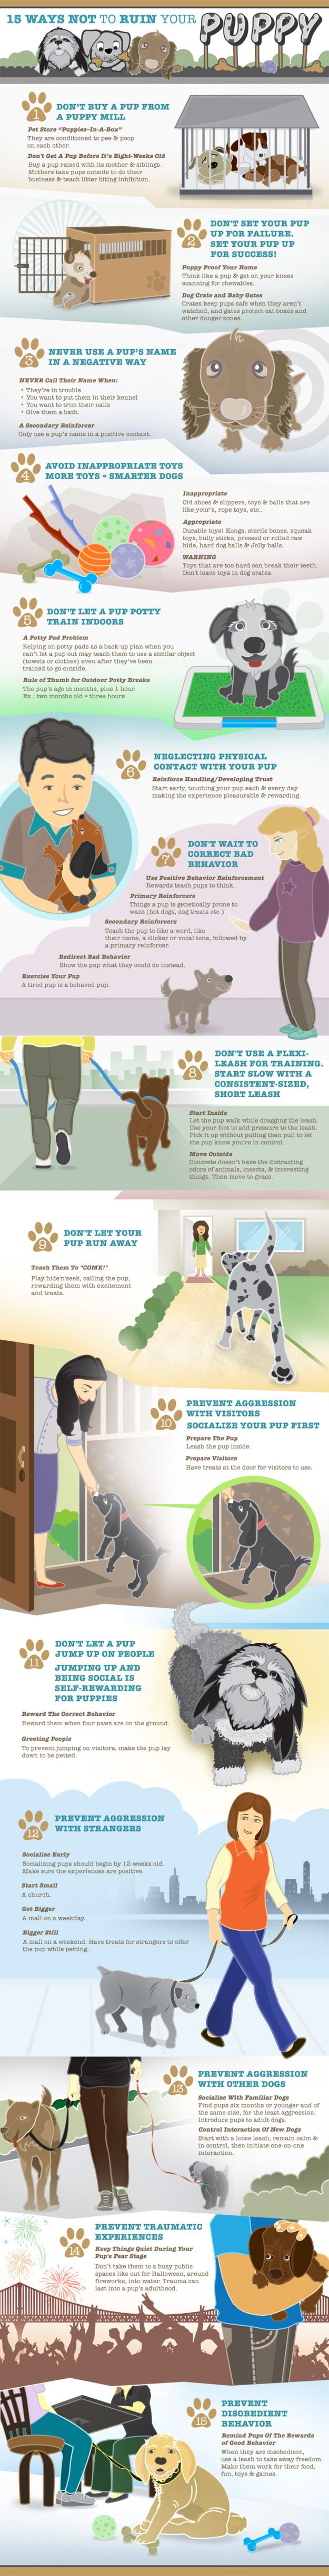 15 Ways Not To Ruin Your Puppy, A Graphic